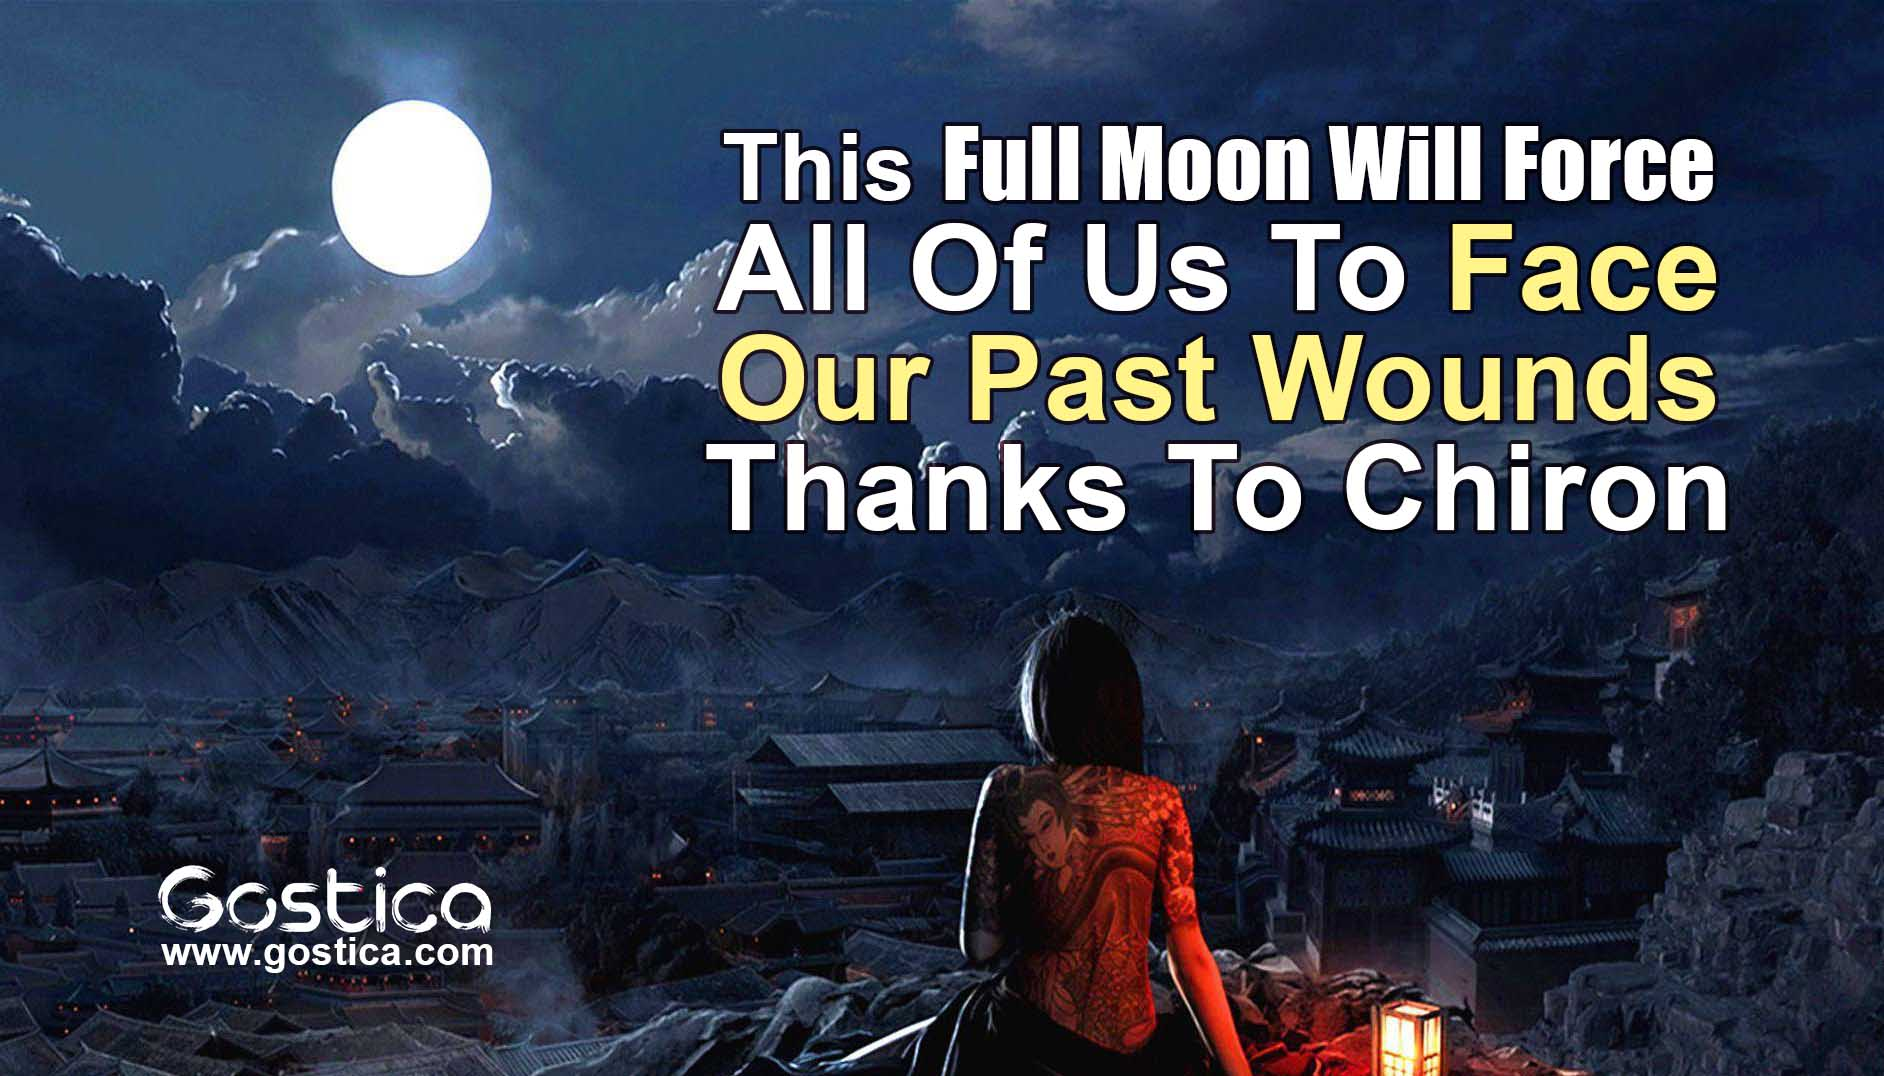 This-Full-Moon-Will-Force-All-Of-Us-To-Face-Our-Past-Wounds-Thanks-To-Chiron.jpg